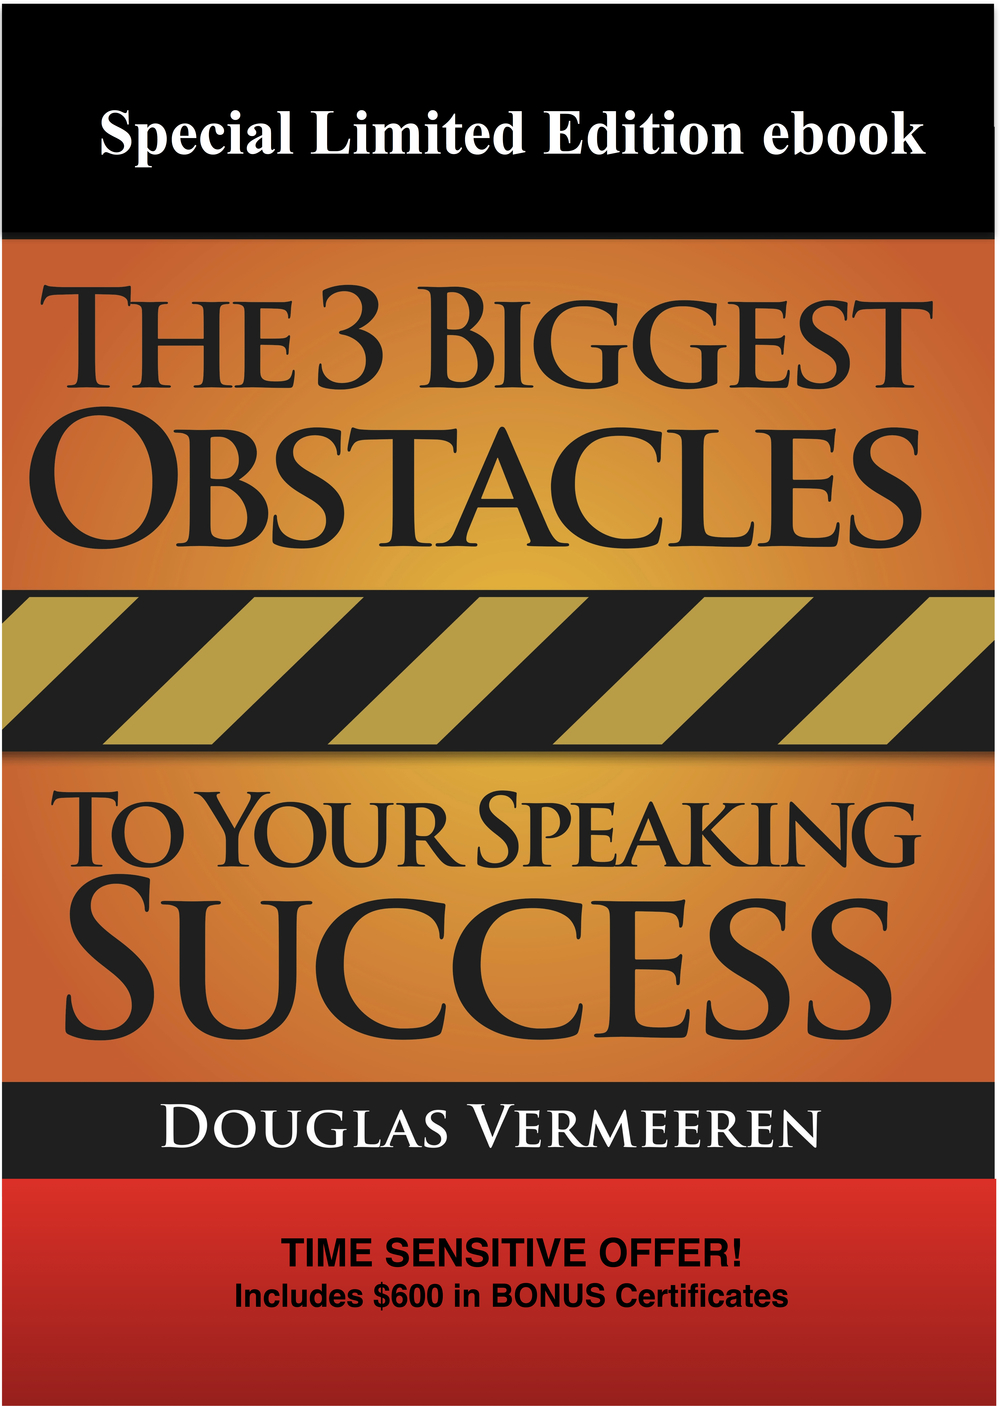 Click on the eBook Cover to open your free eBook.